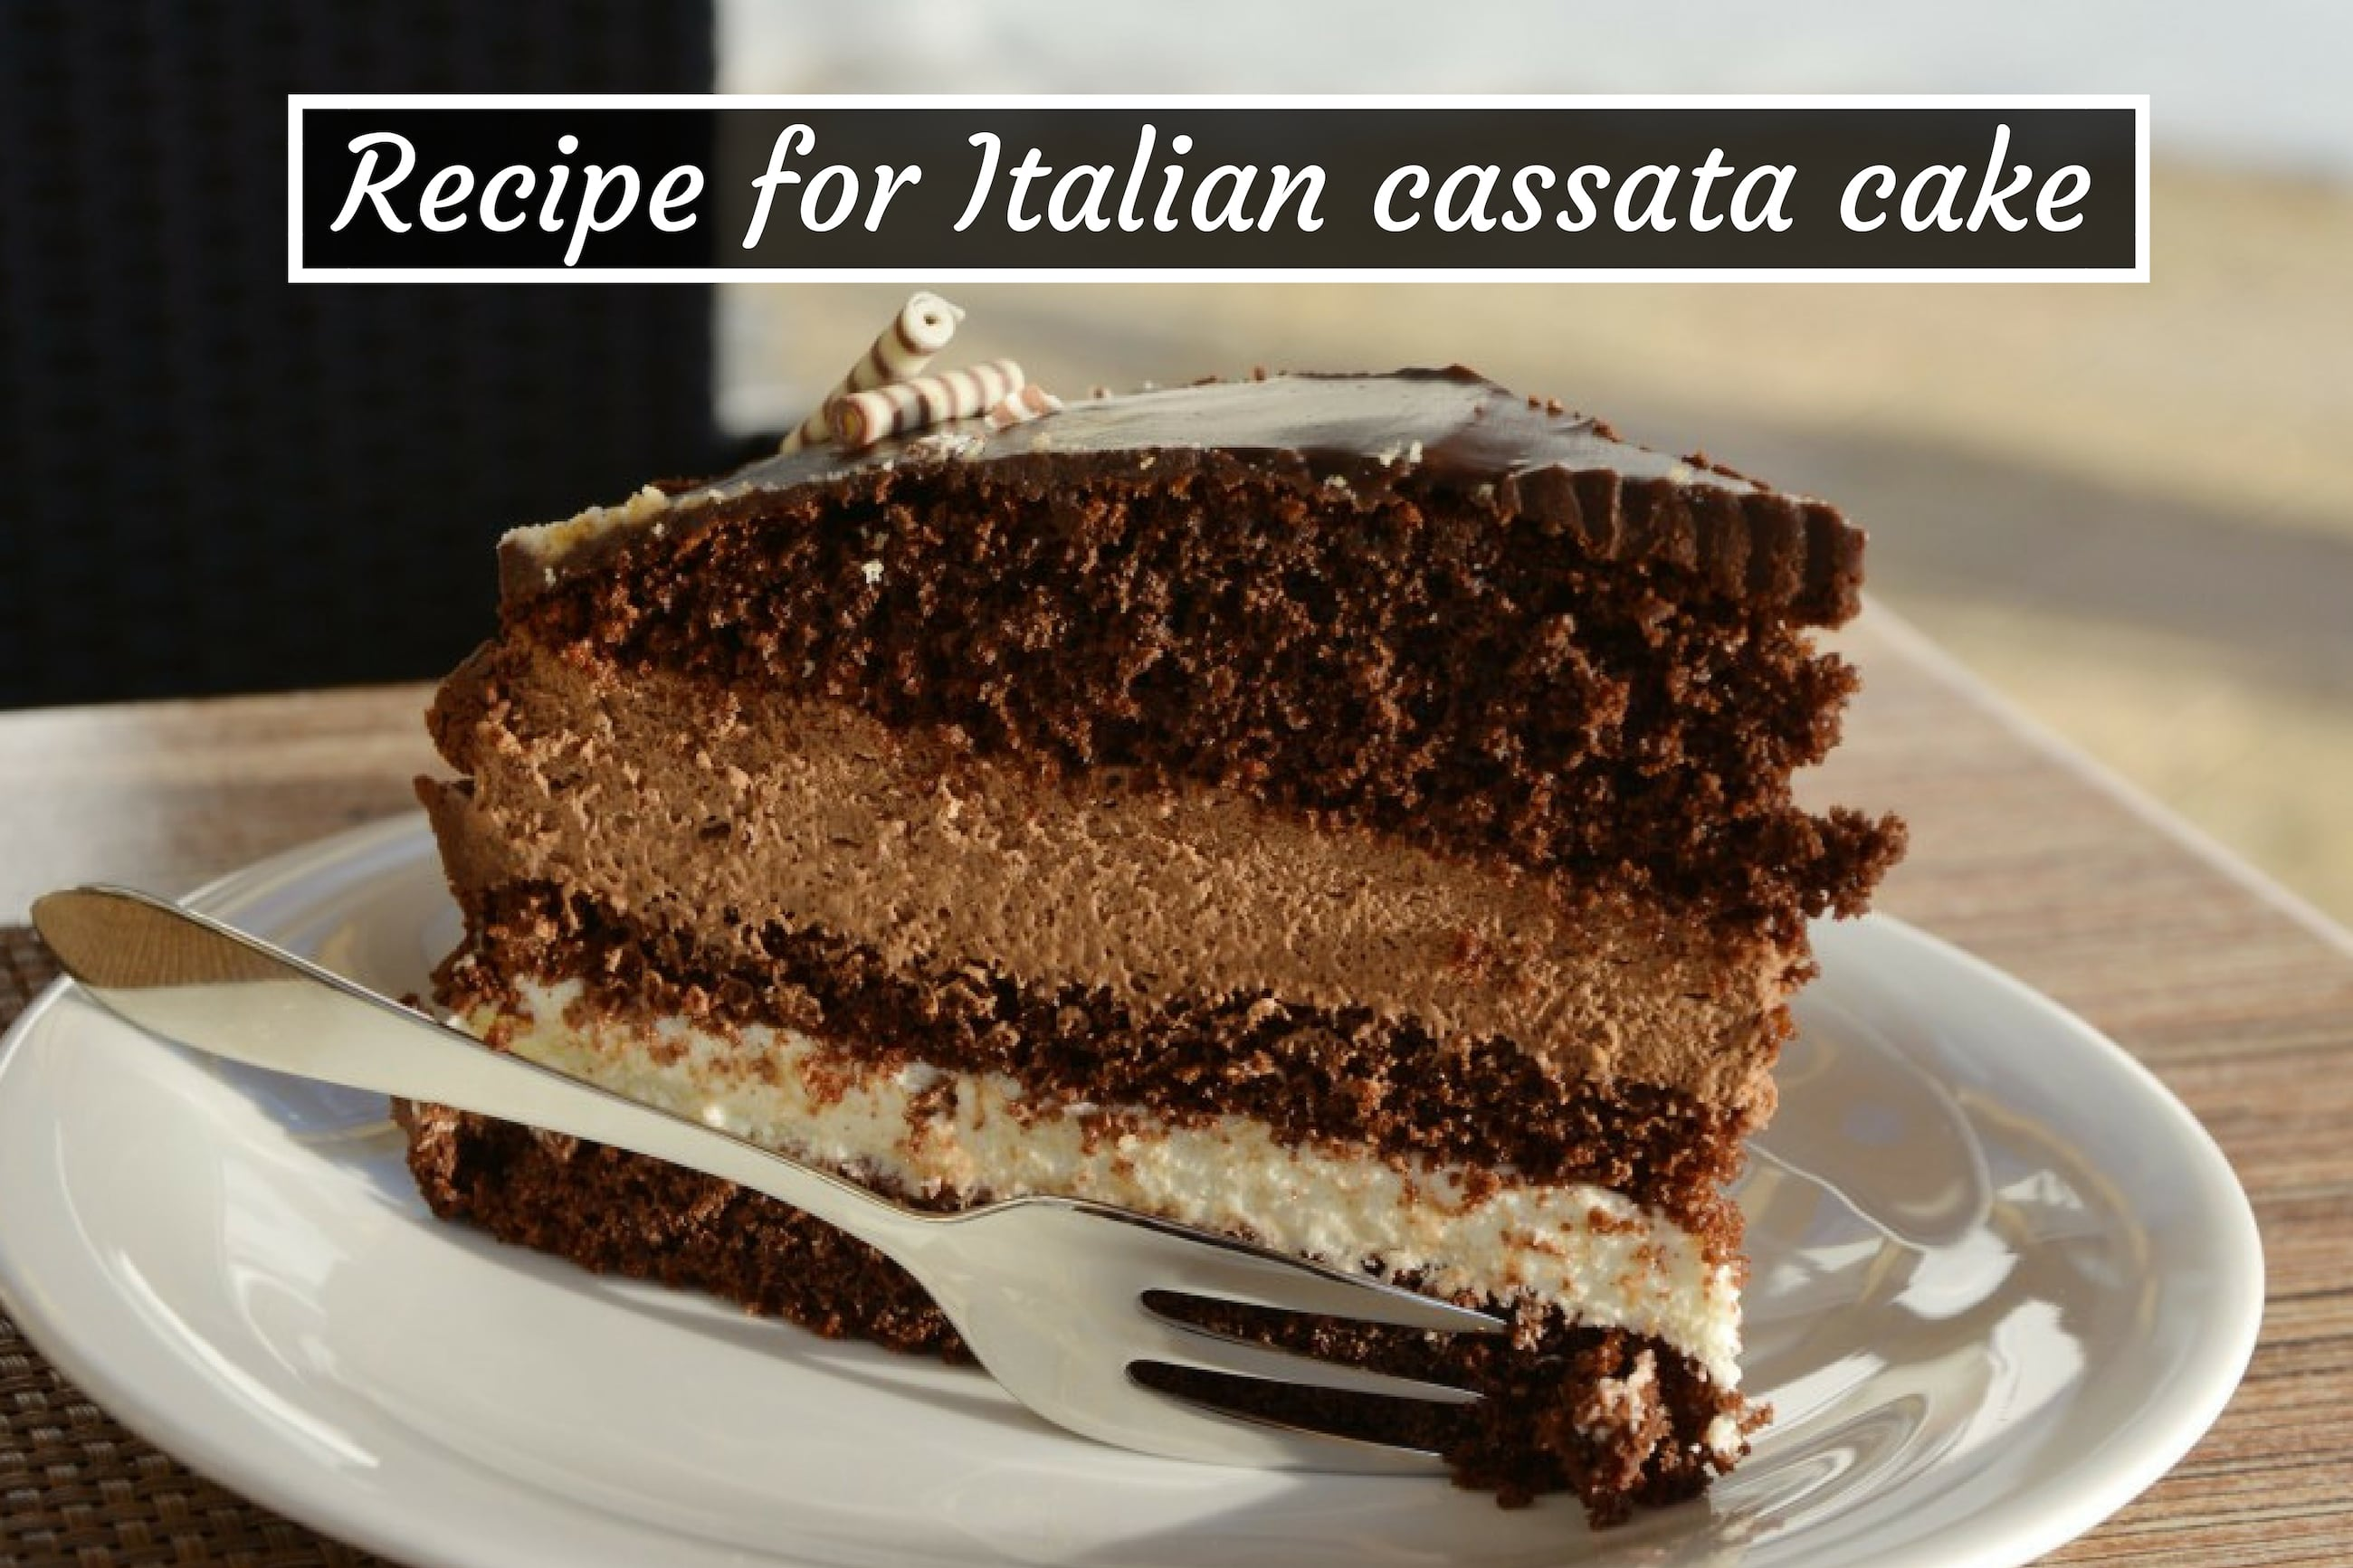 Our recipe for delicious Italian cassata cake